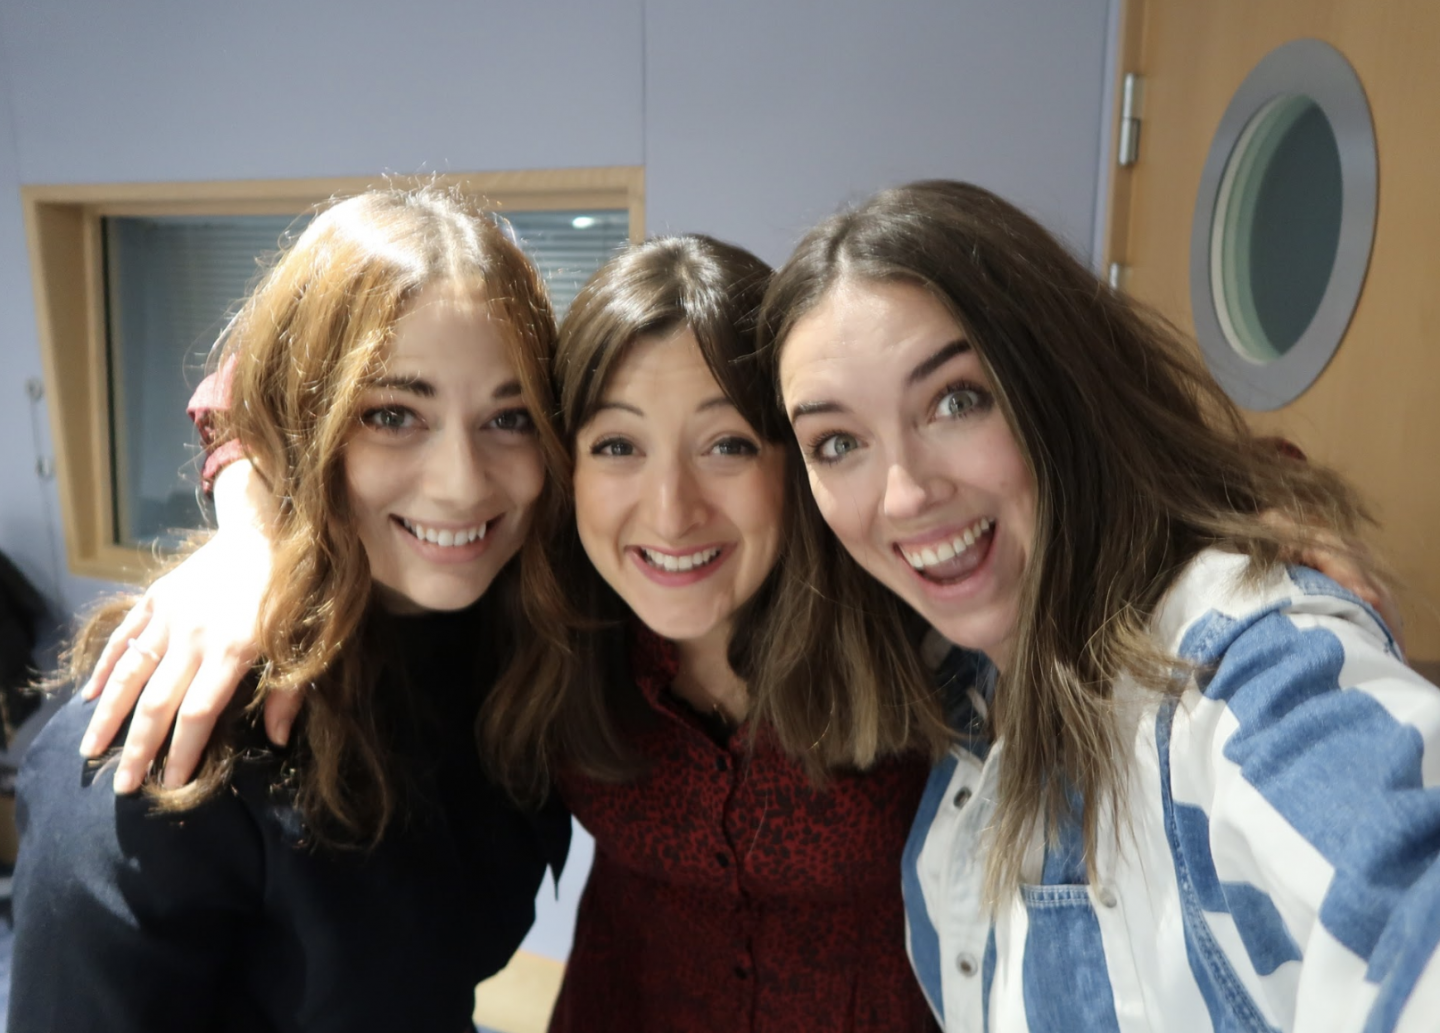 #BackChat Beauty X Outspoken Beauty Special: Lisa Potter Dixon and Sophie Beresiner Q and A